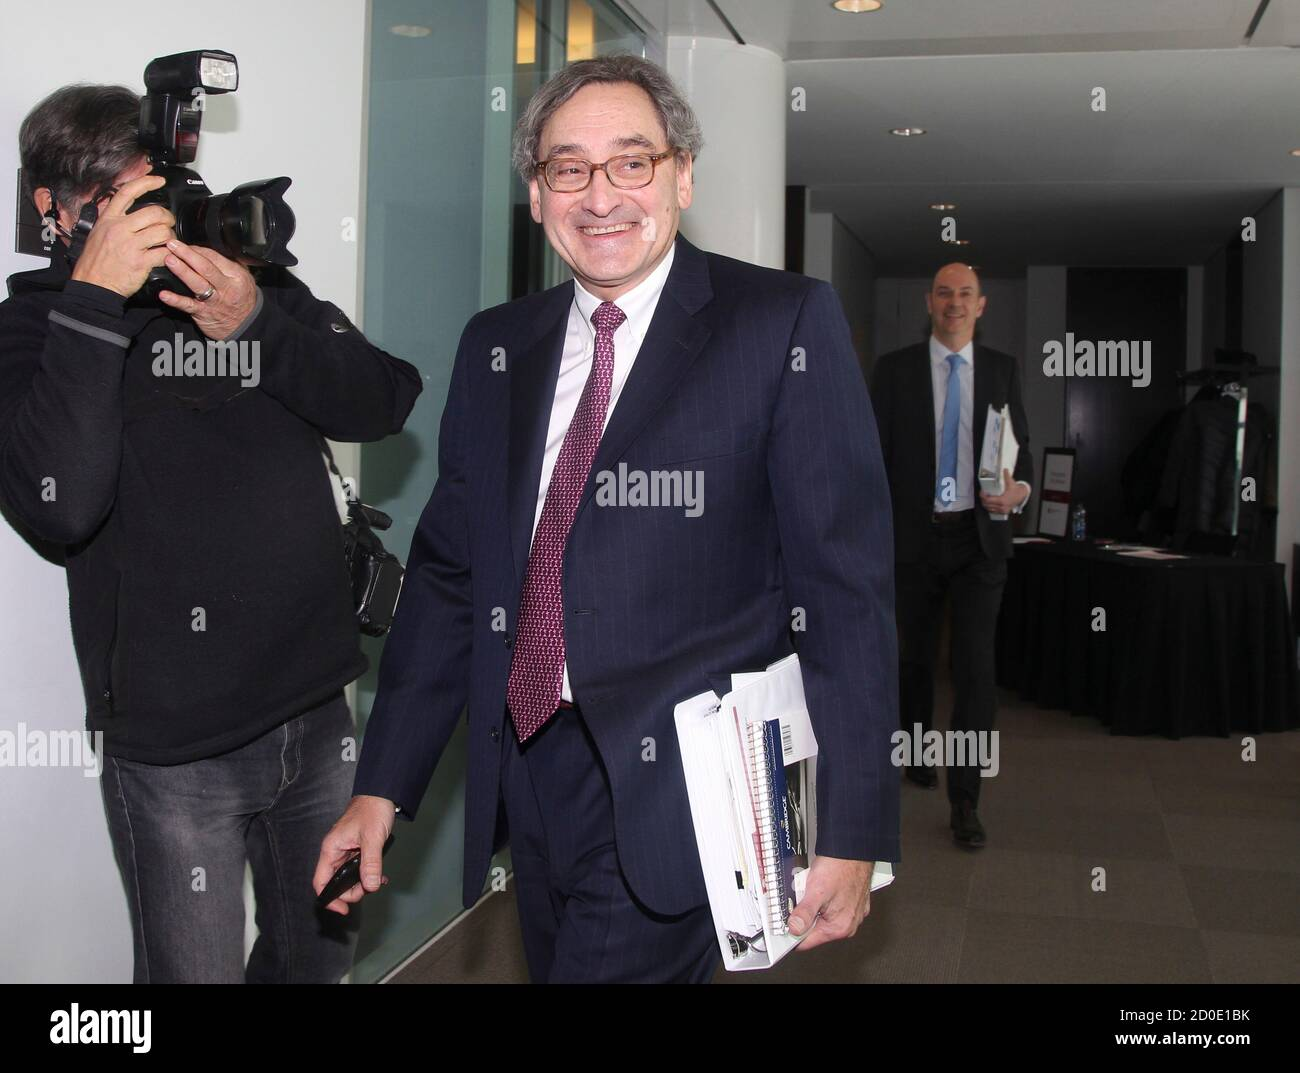 Michael Sabia, president and chief executive officer of Caisse de depot et placement du Quebec (CDP) walks to a press briefing for the release of their 2013 financial results in Montreal, February 26, 2014. REUTERS/Christinne Muschi (CANADA - Tags: BUSINESS) Foto Stock